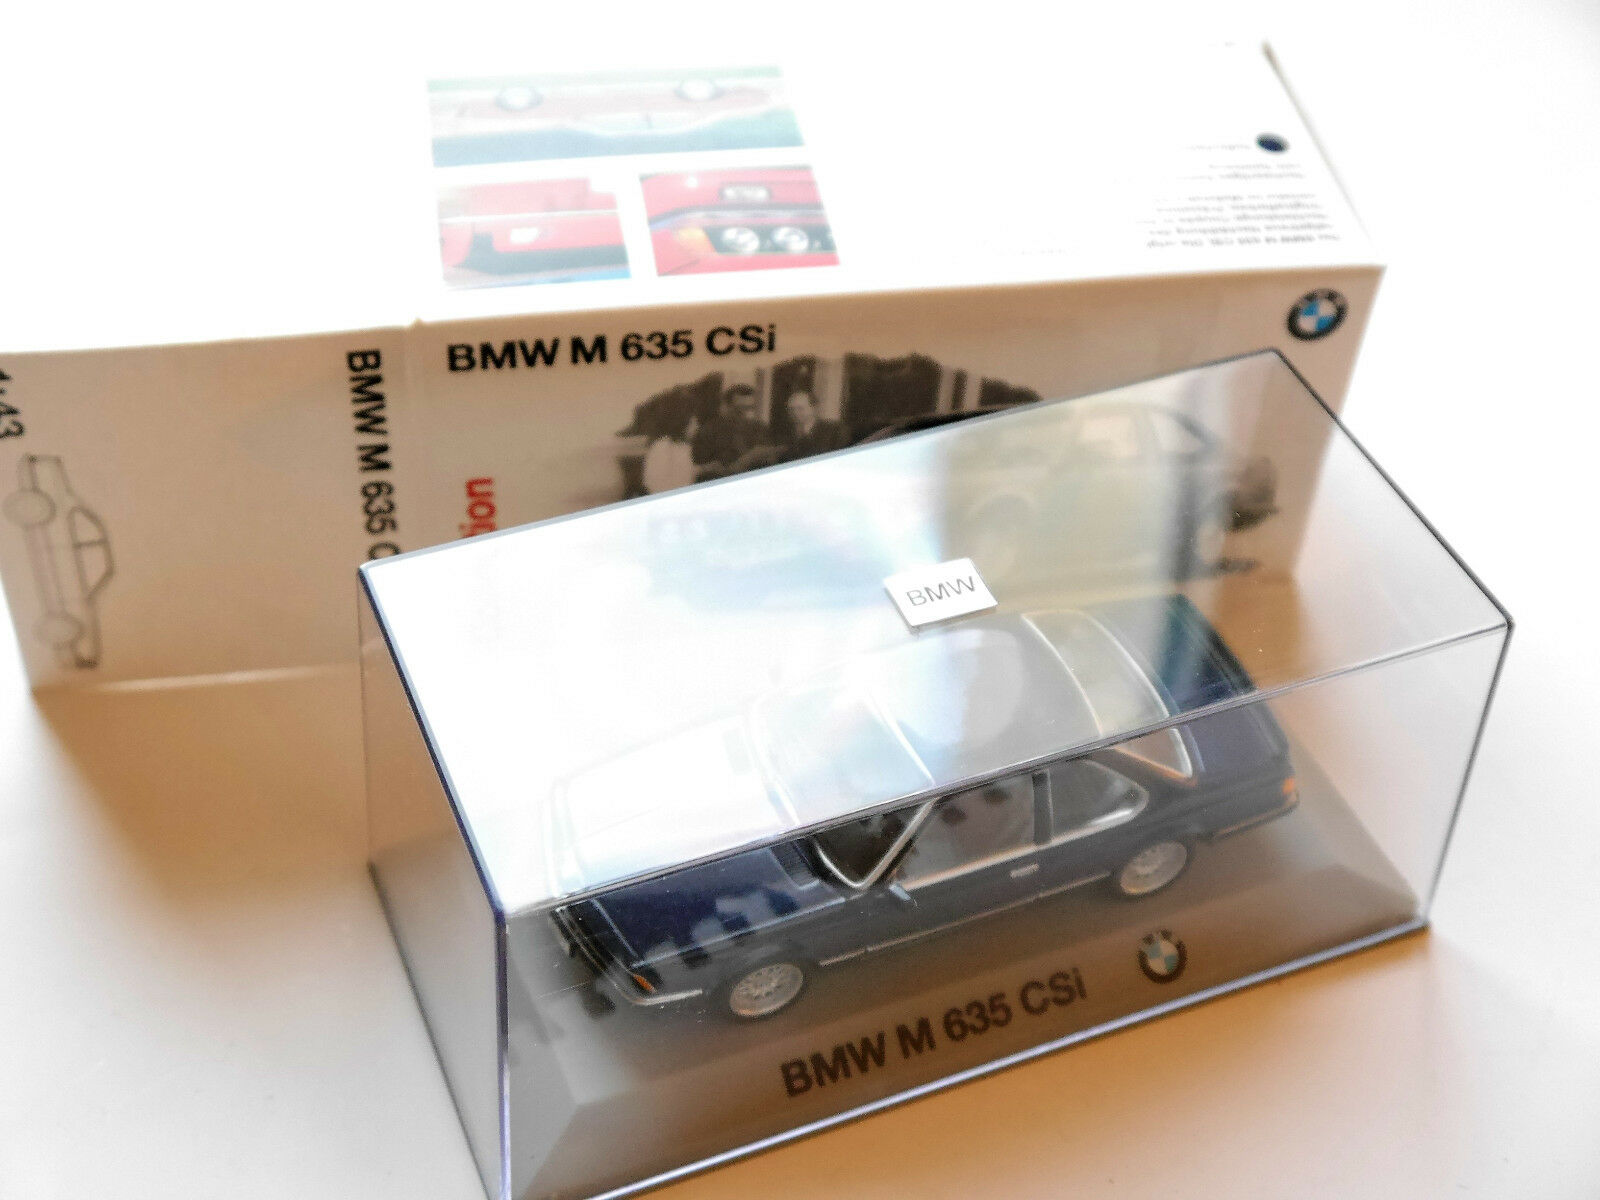 BMW M 635 CSi blau Blau Blau Blau metallic, Minichamps  80429421475 1 43 DEALER